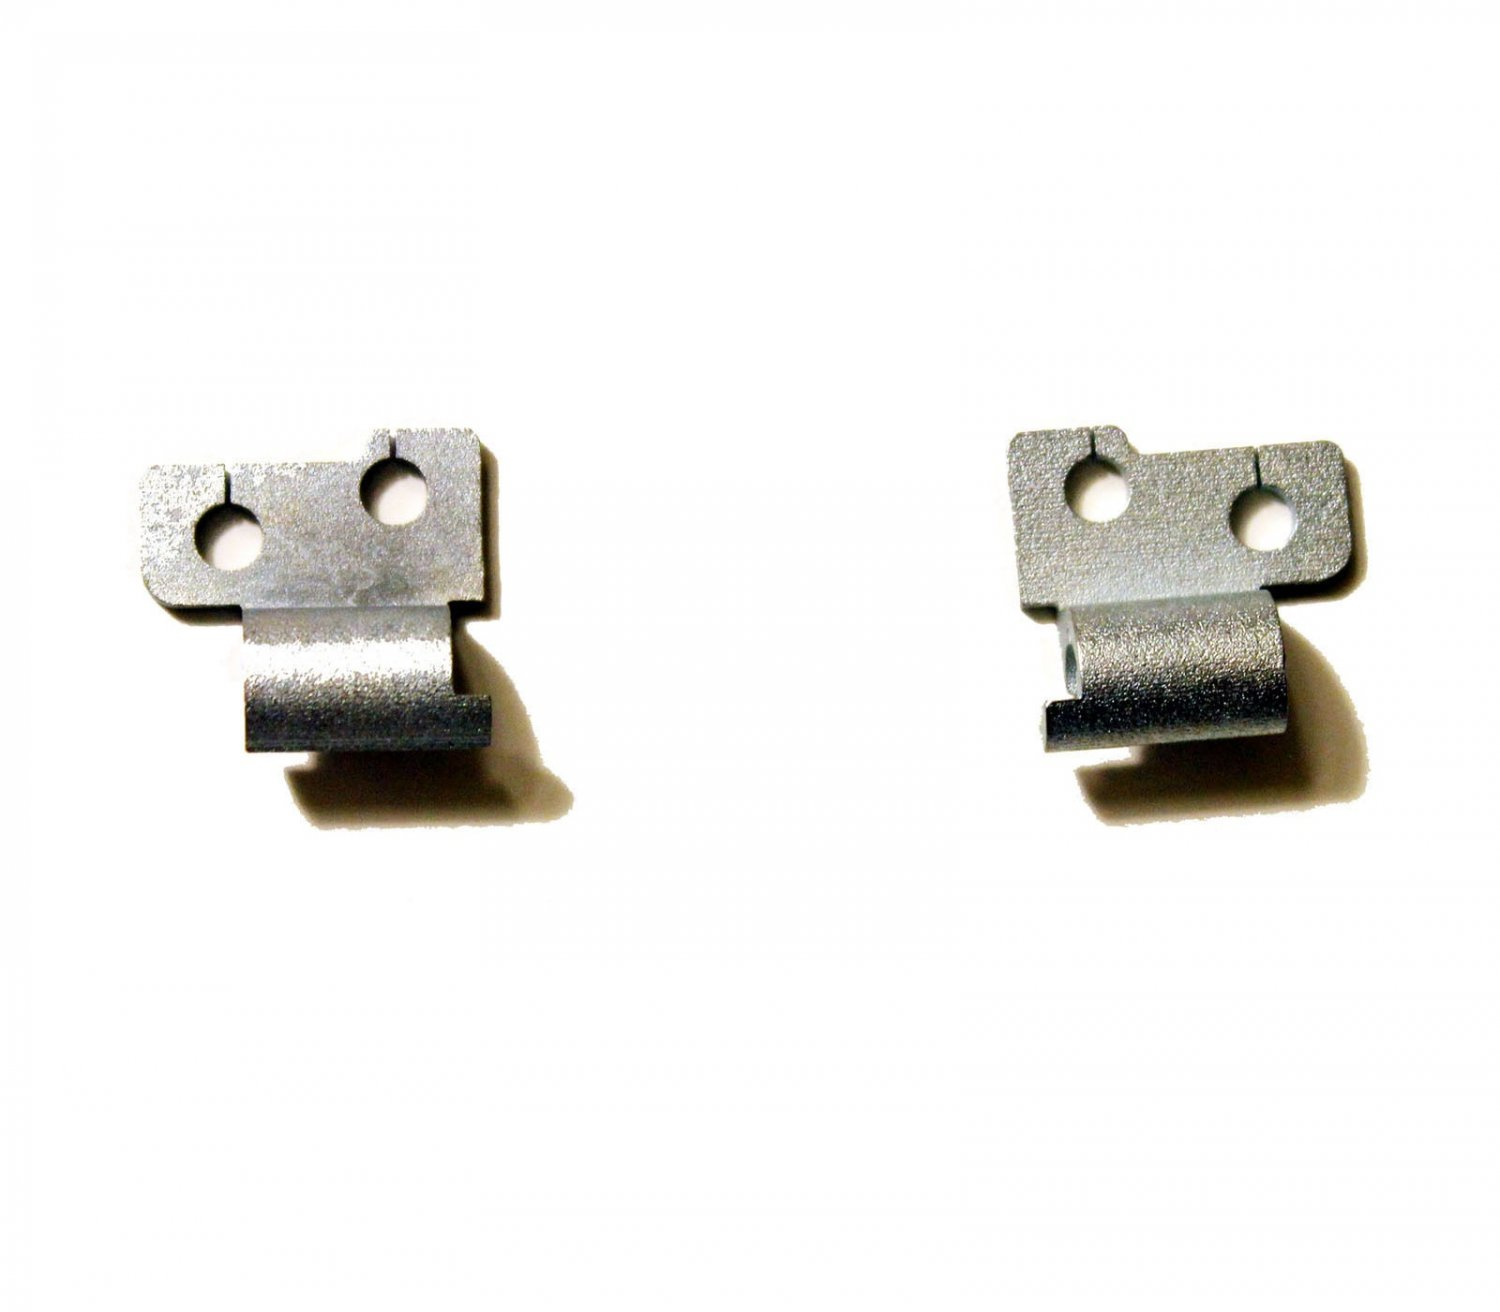 New Apple Macbook Air A1237 A1304 Left and Right Hinge Hinges Set